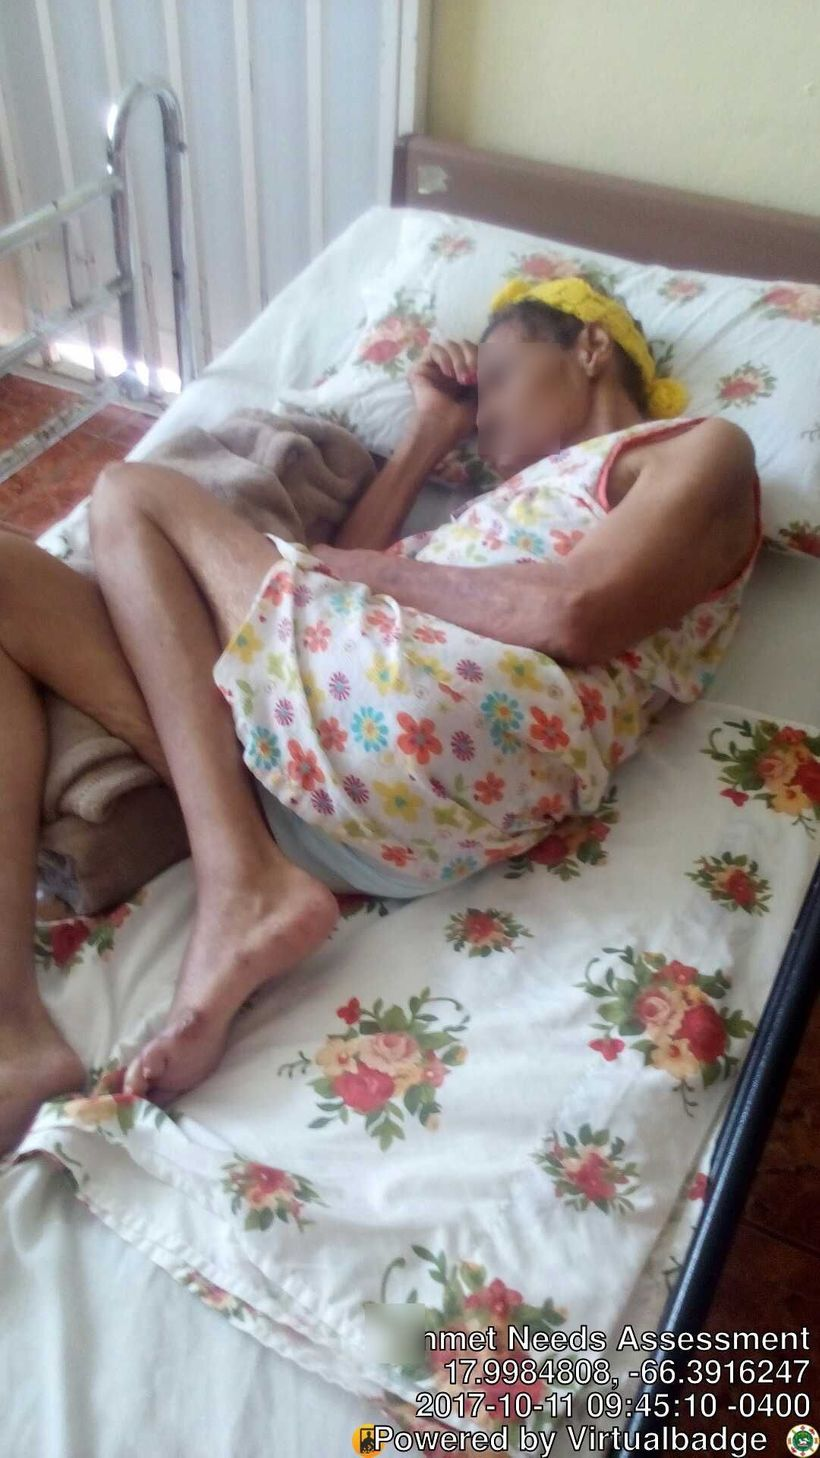 A woman in a Juaca nursing home wearing bed sheets in place of adult diapers.